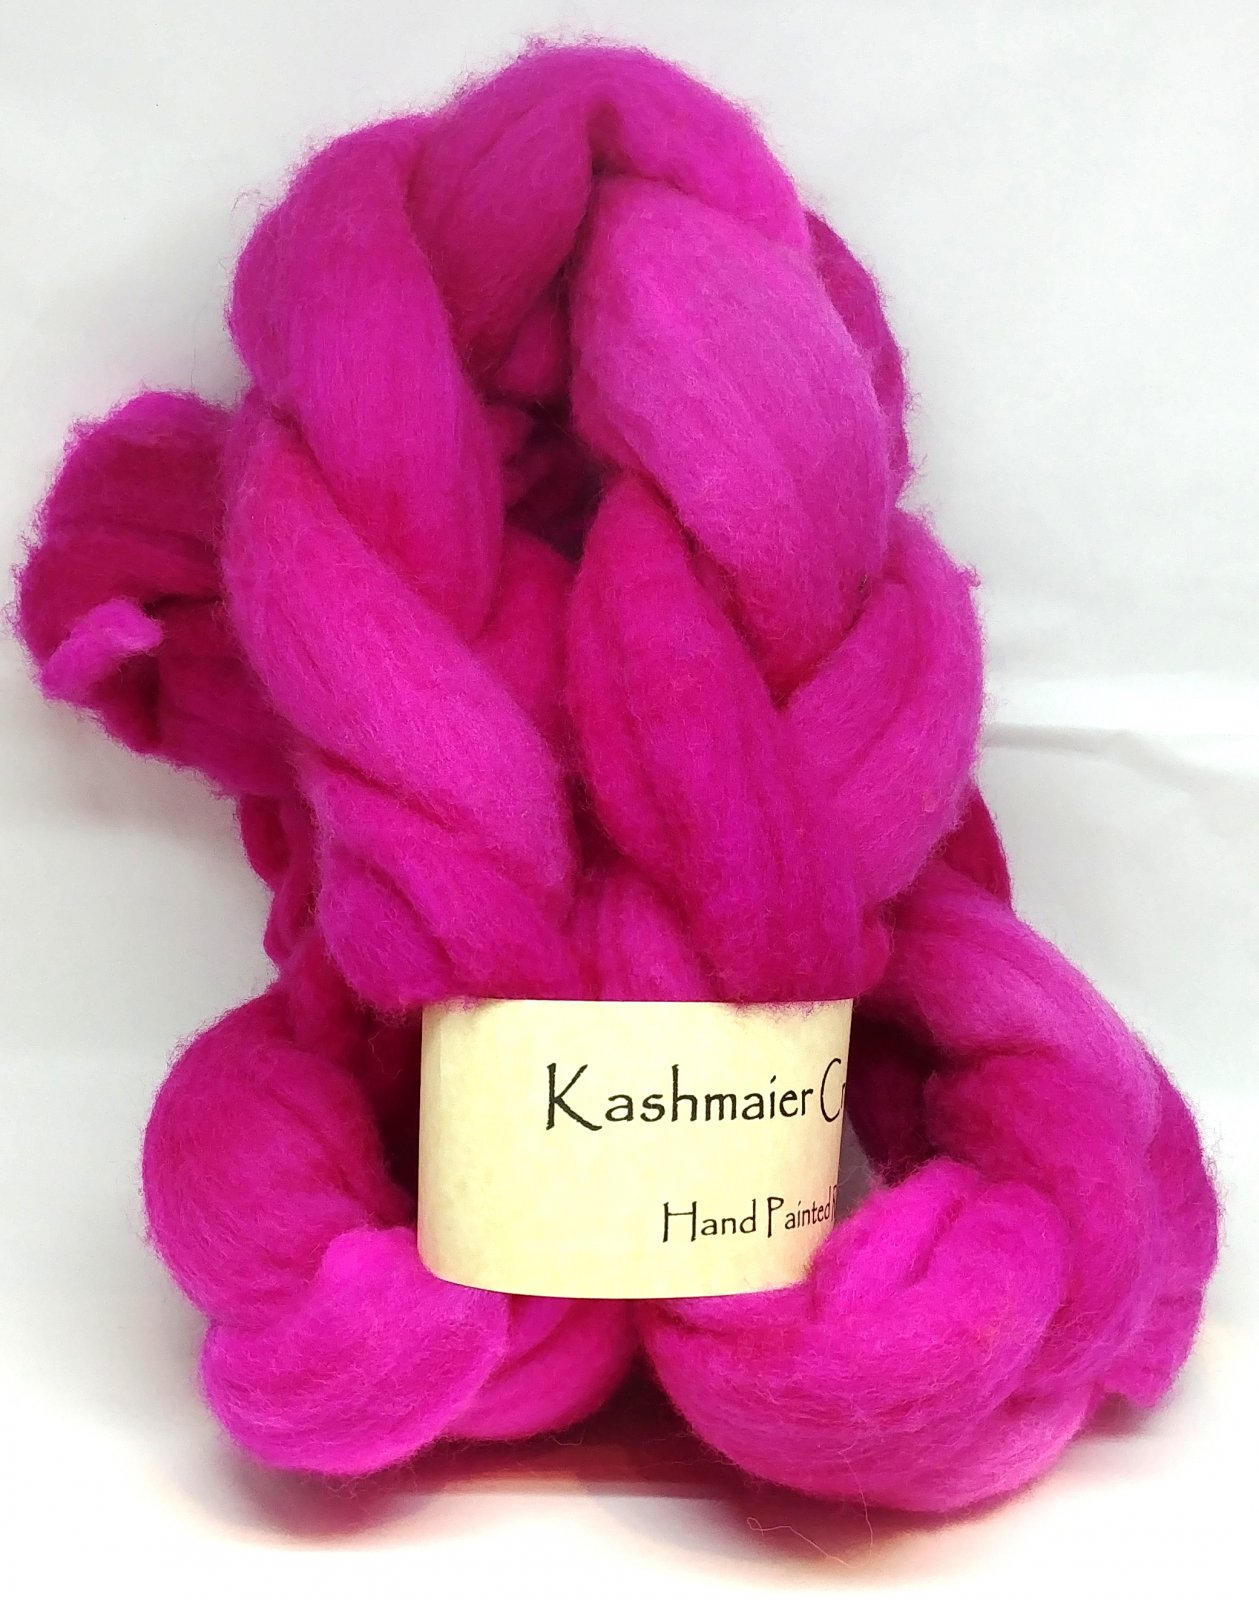 Kashmaier Creations - Hand Painted Roving (Merino 21.5 Micron)